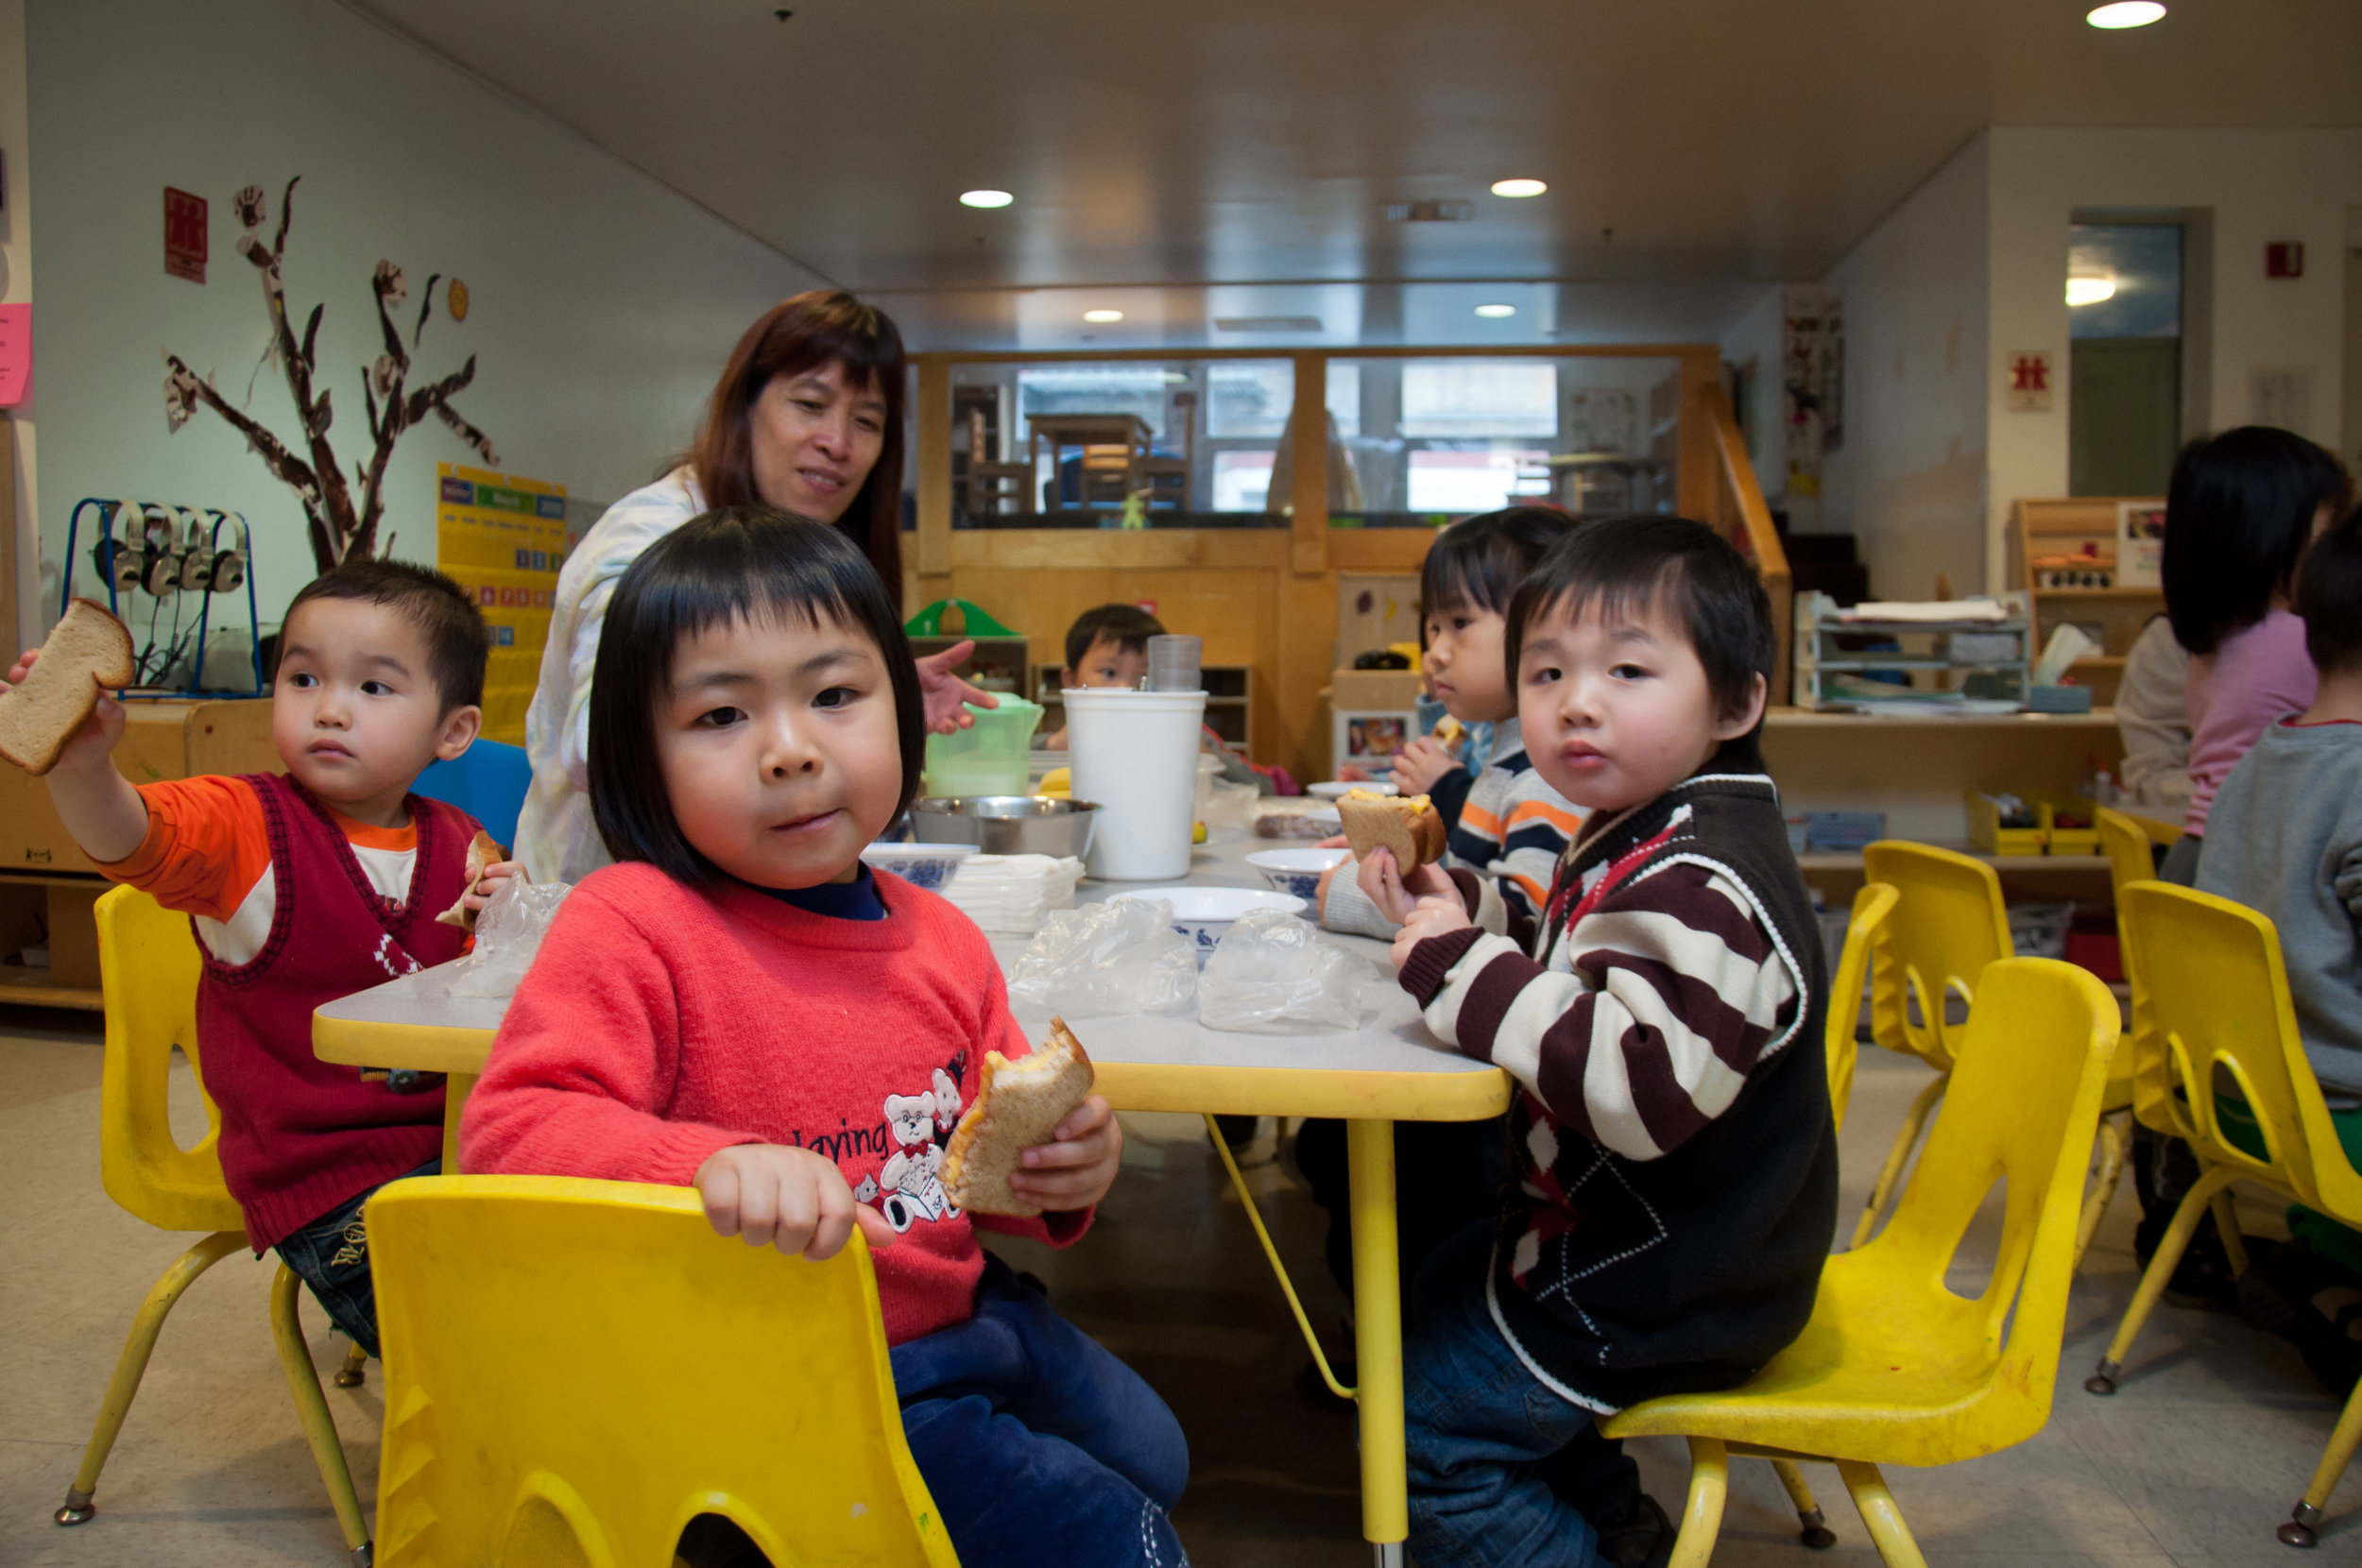 Provider Services - Wu Yee expands access to quality care by offering training and business development resources for early childhood educators to start or expand a family child care home business.START YOUR OWN BUSINESS>JOIN OUR QUALITY NETWORK>